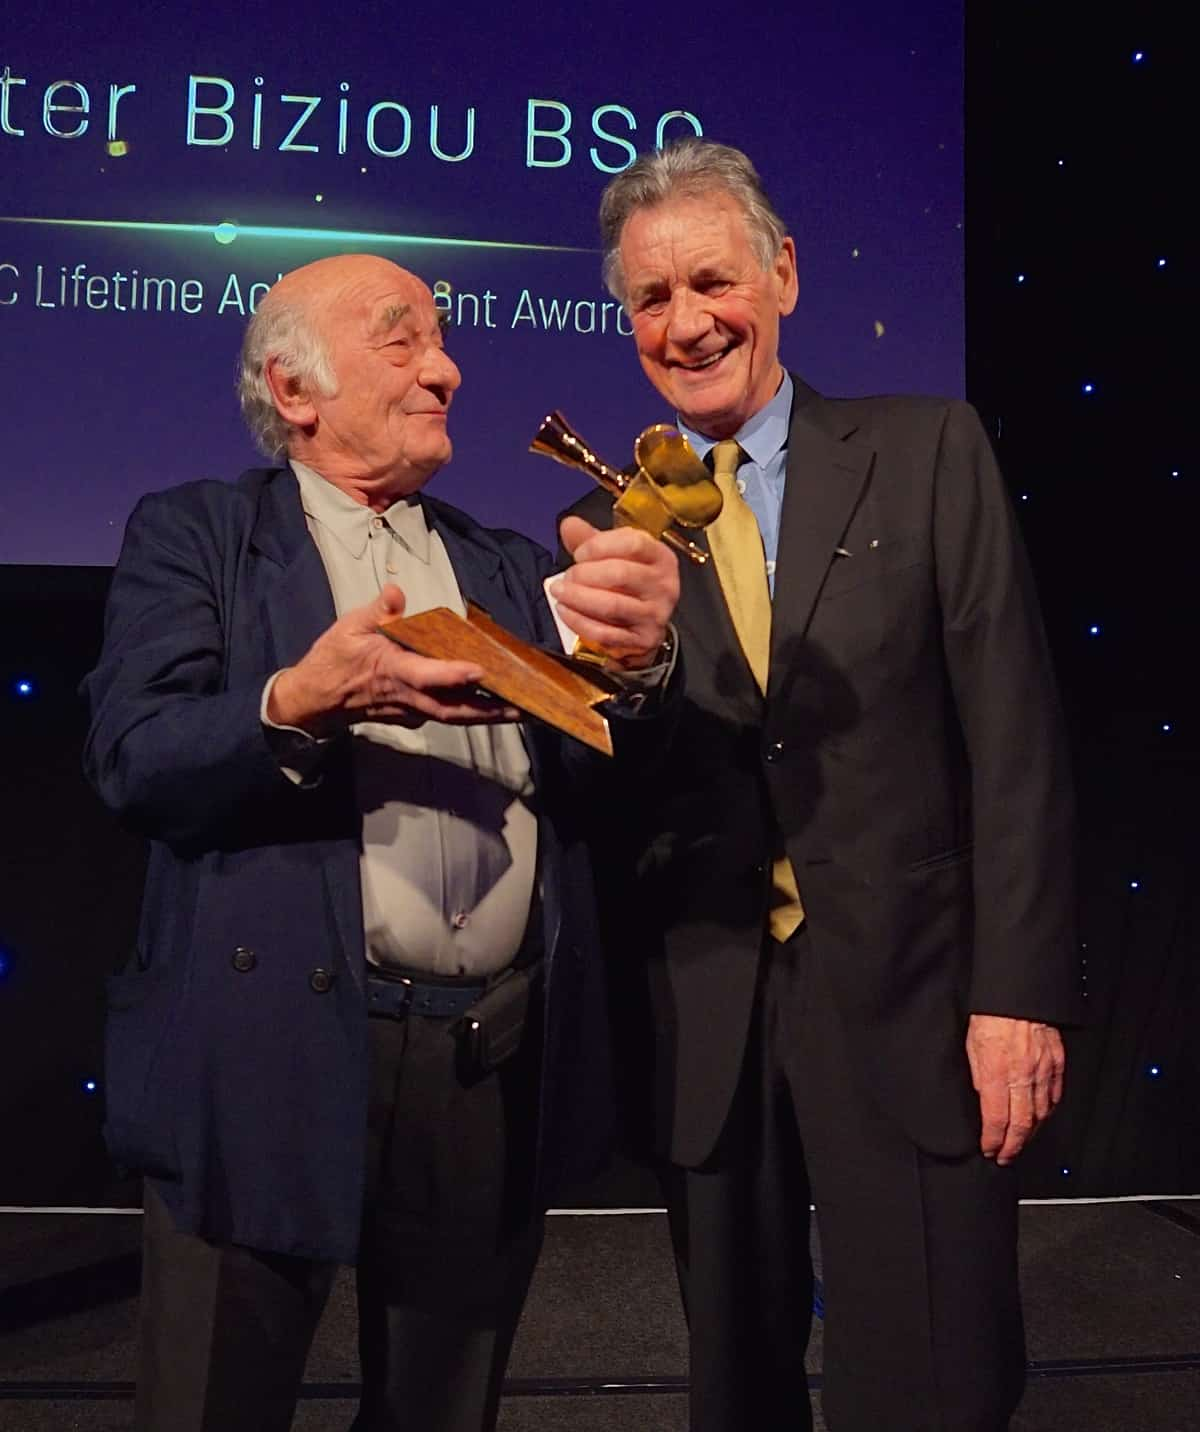 Peter Biziou BSC receives the BSC Lifetime Award from Sir Michael Palin